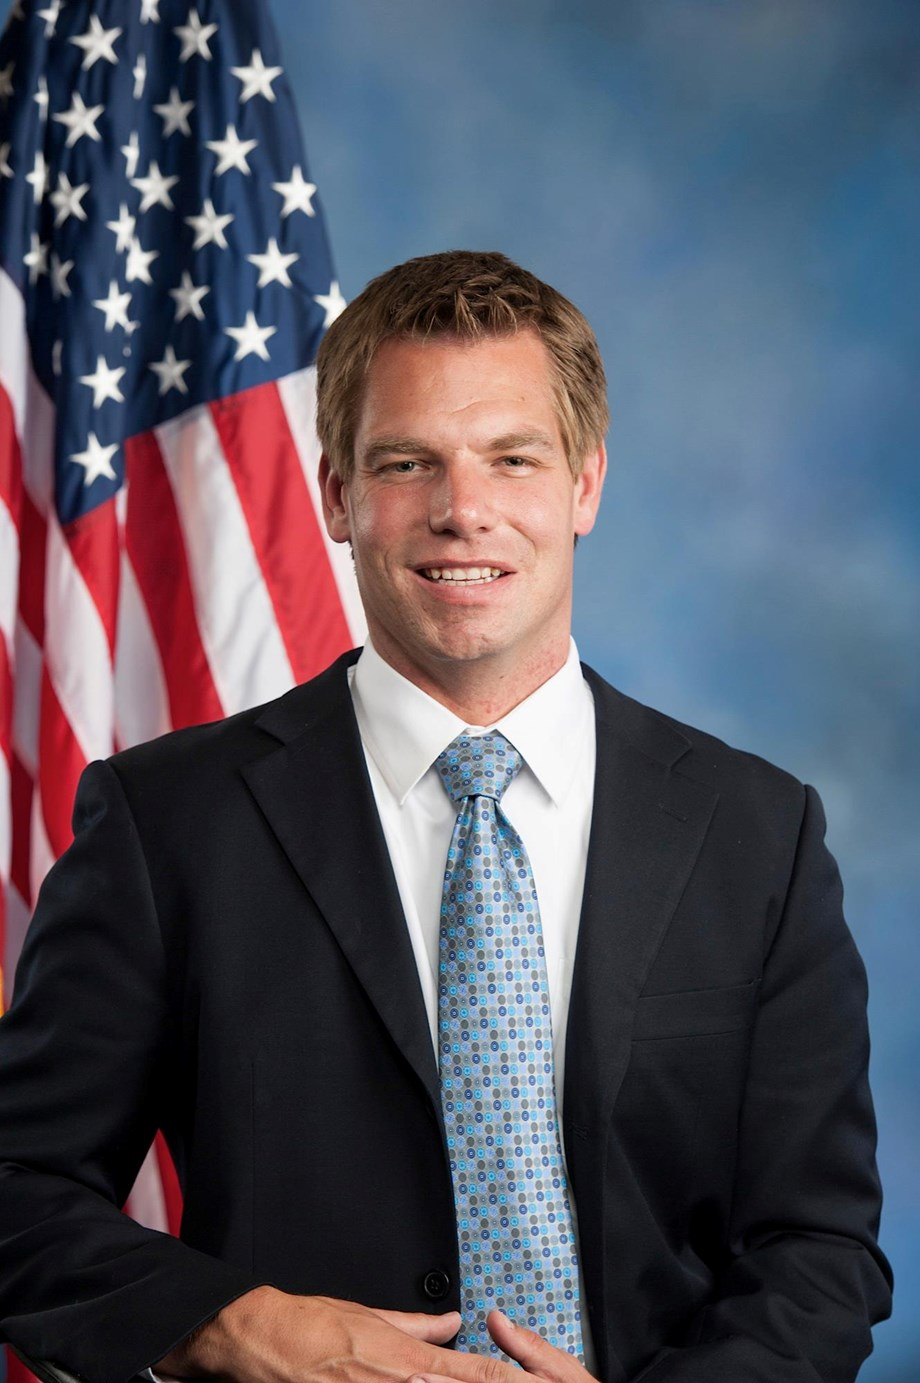 Democrat Swalwell to contest 2020 Presidential polls, Trump opposition grows